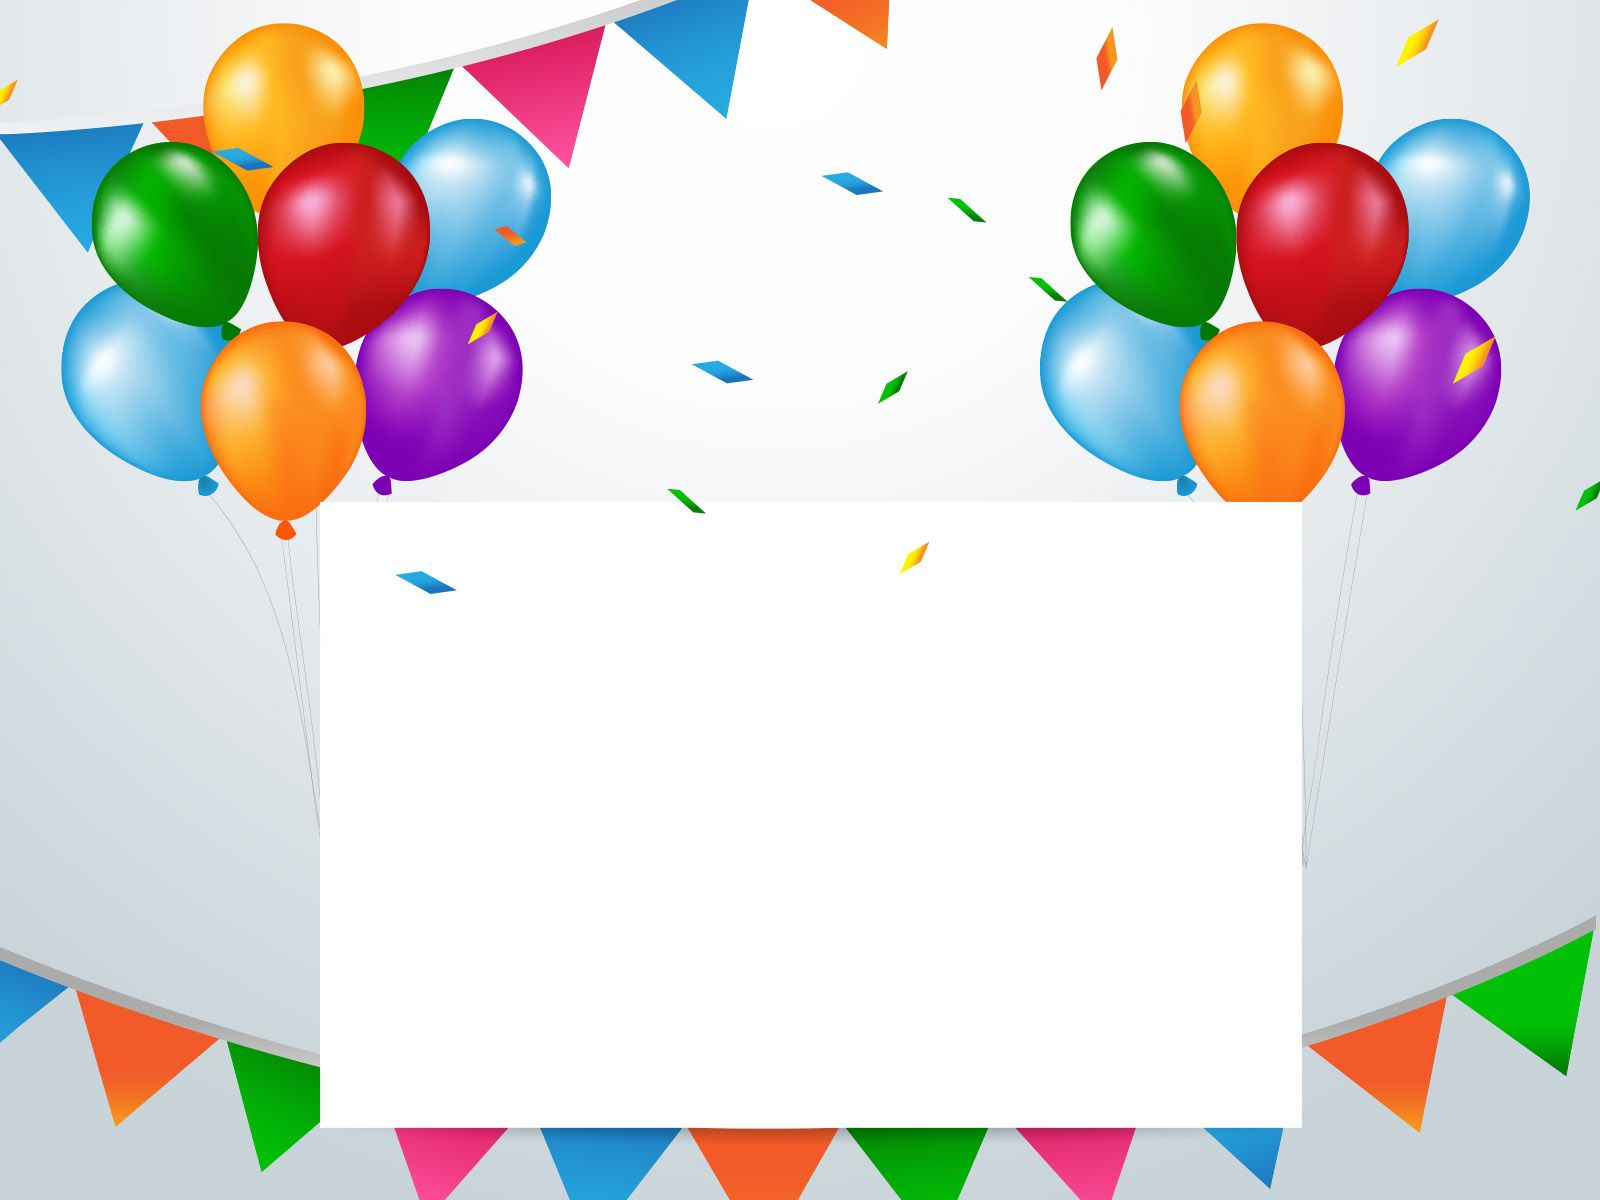 This Colourful Birthday Balloons powerpoint background designed